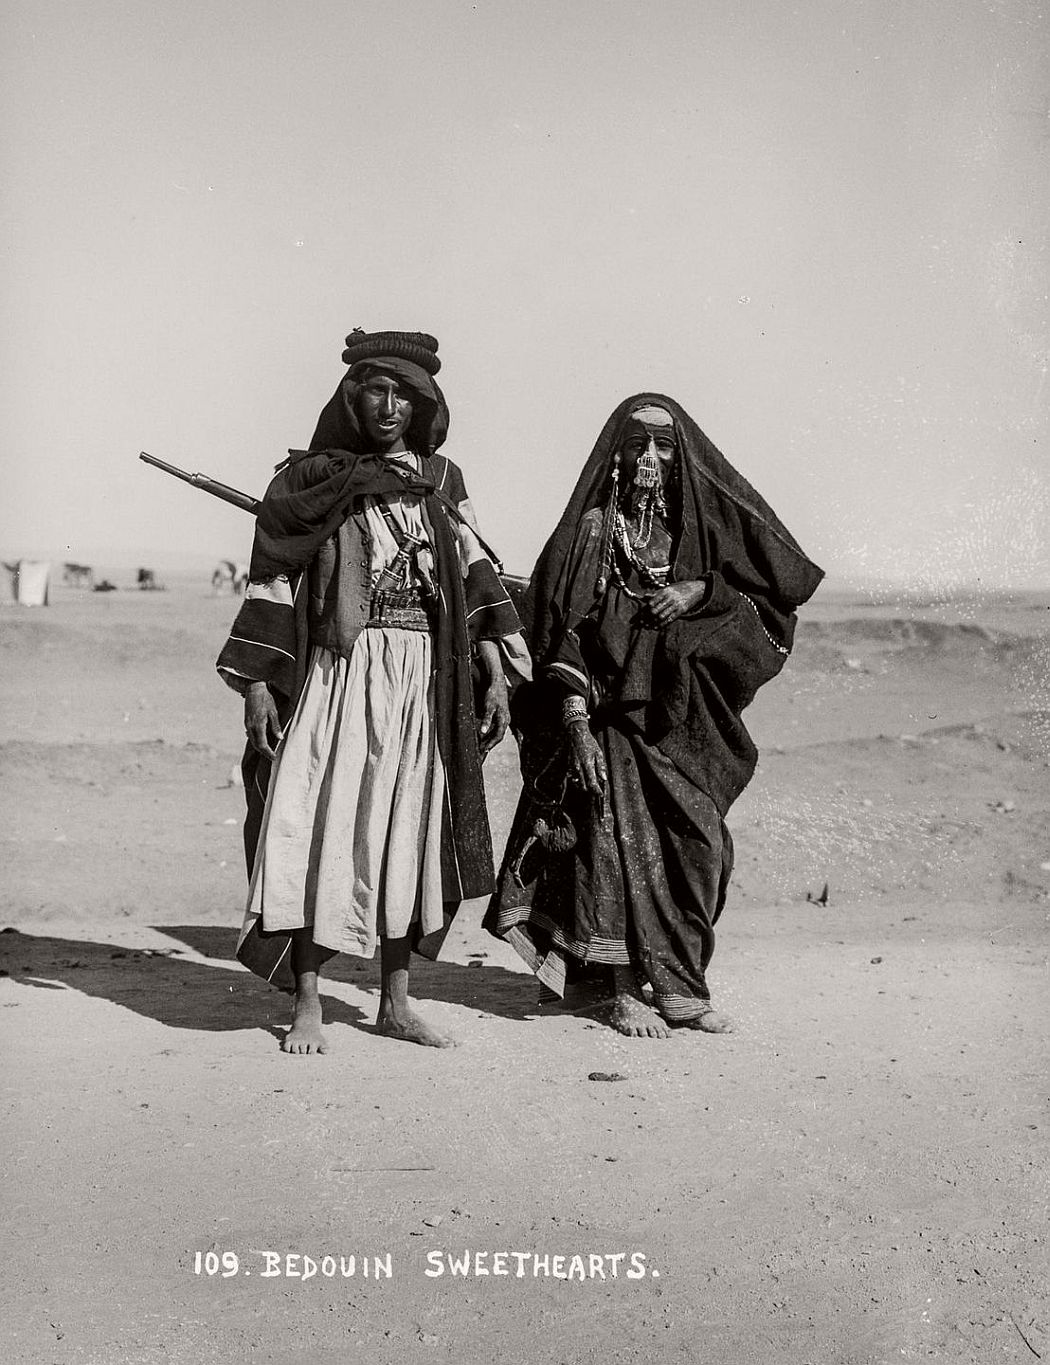 vintage-bedouins-in-egypt-the-sinai-palestine-and-jerusalem-from-1898-14